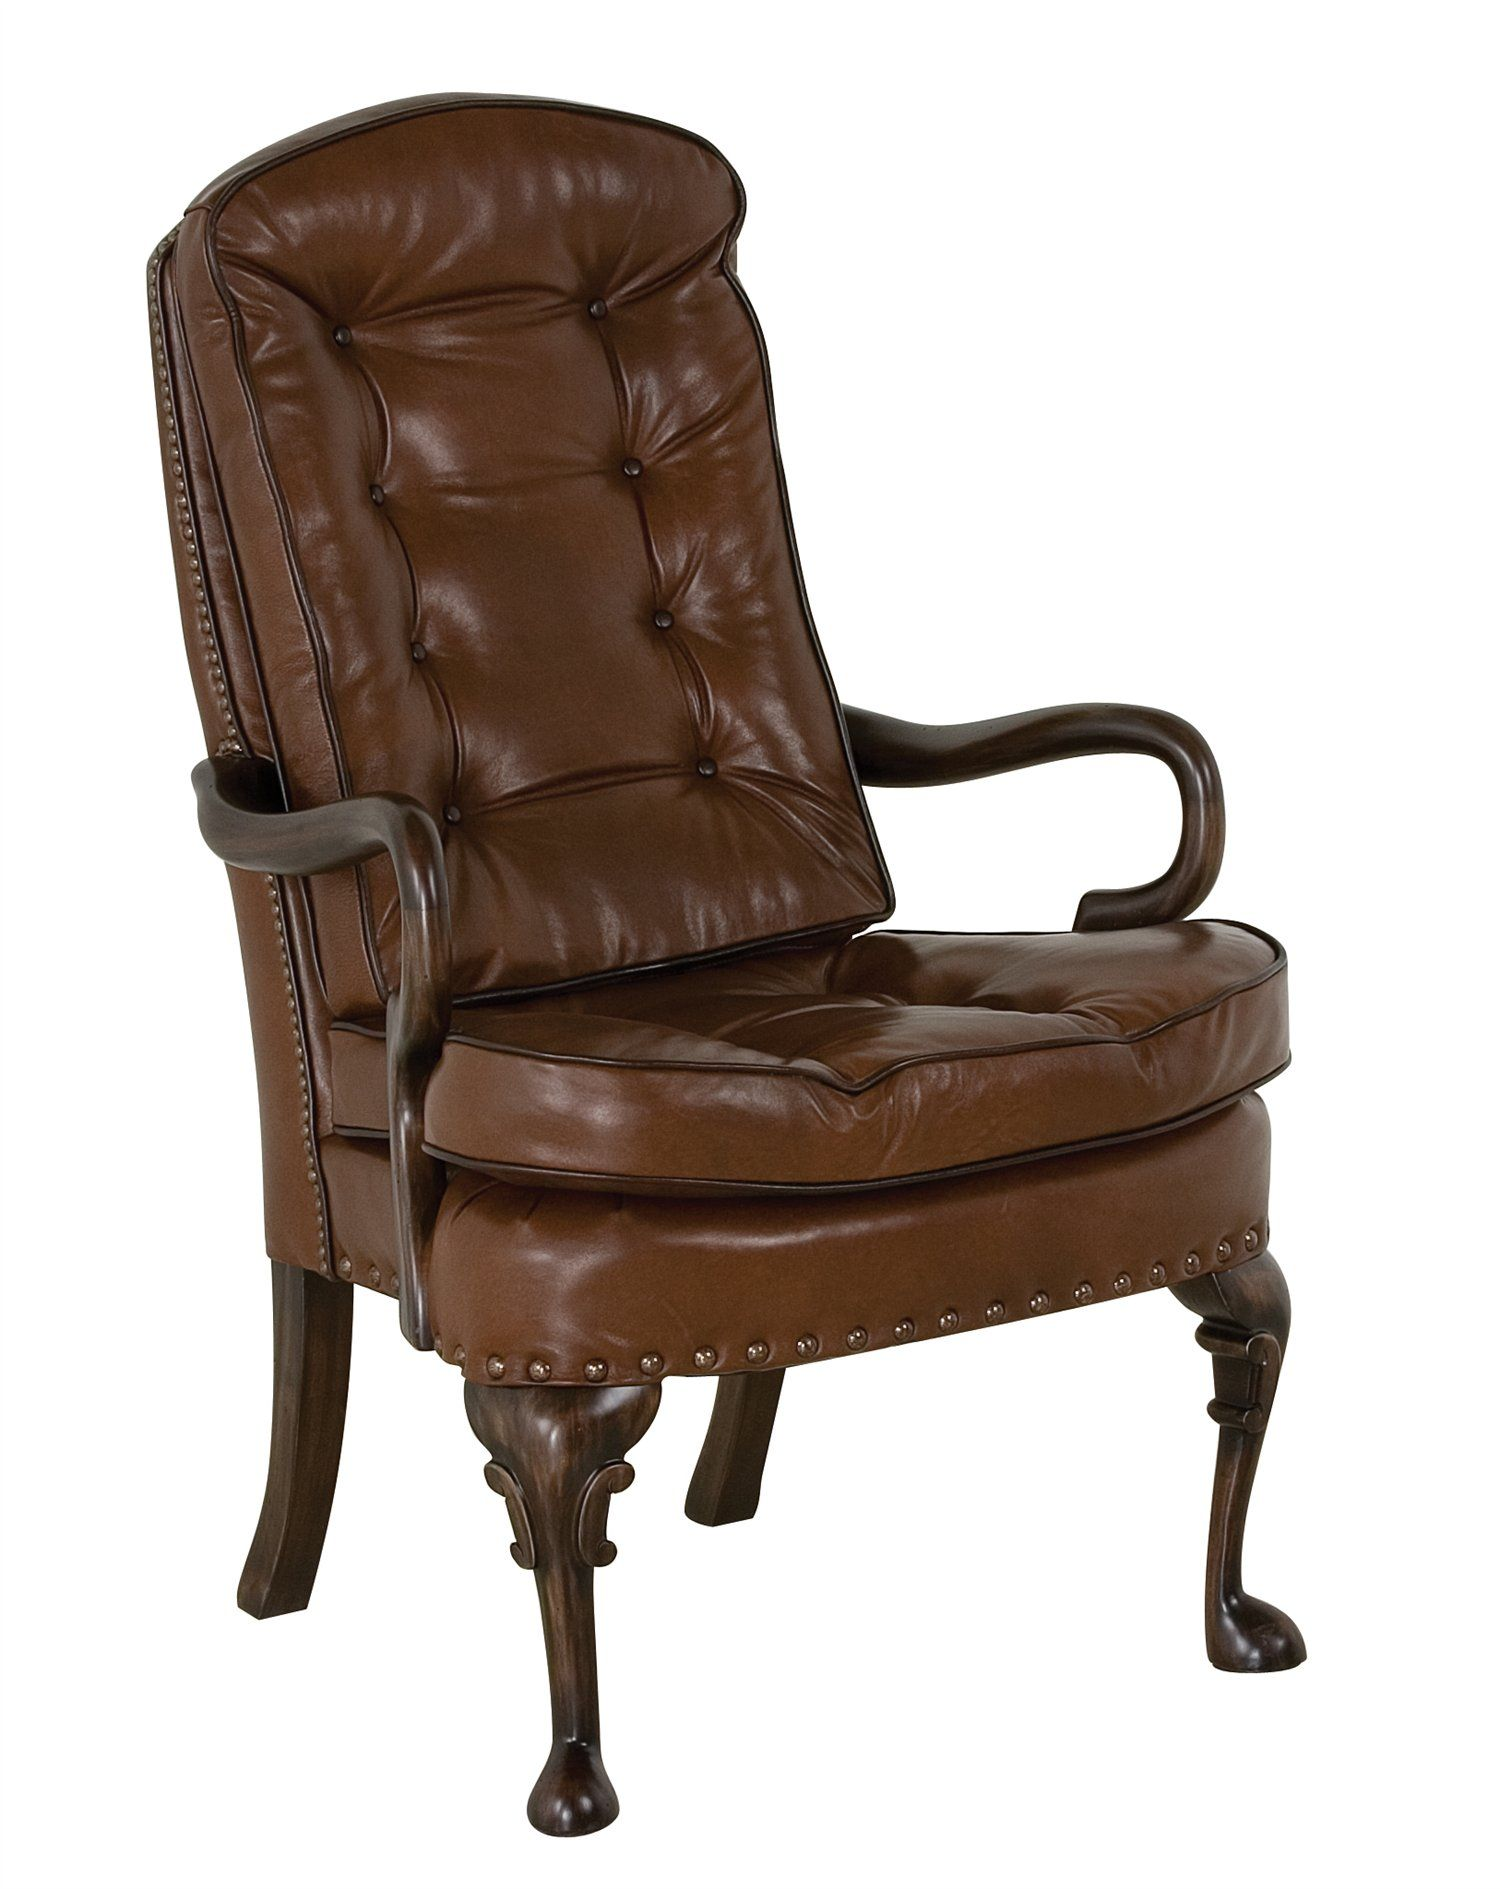 Classic Leather Semi Attached Goose Neck Chair Chair